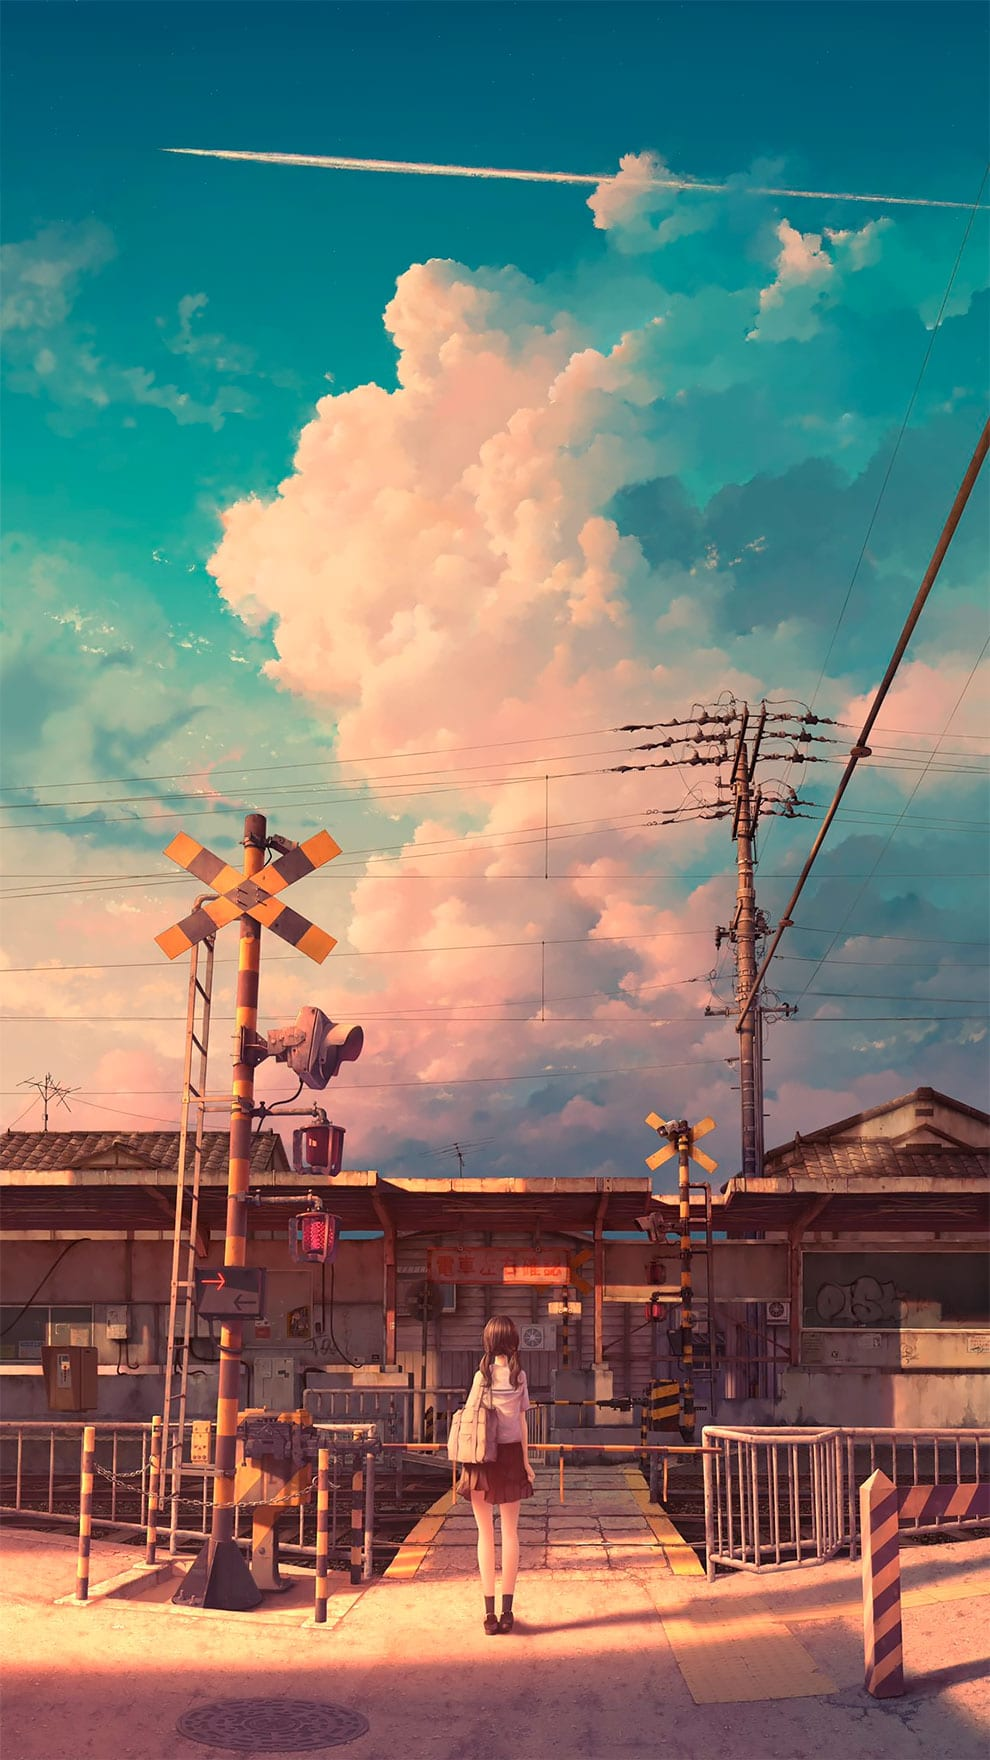 Artist Combines Photorealistic and Anime Style Drawings in Beautifully Nostalgic Illustrations